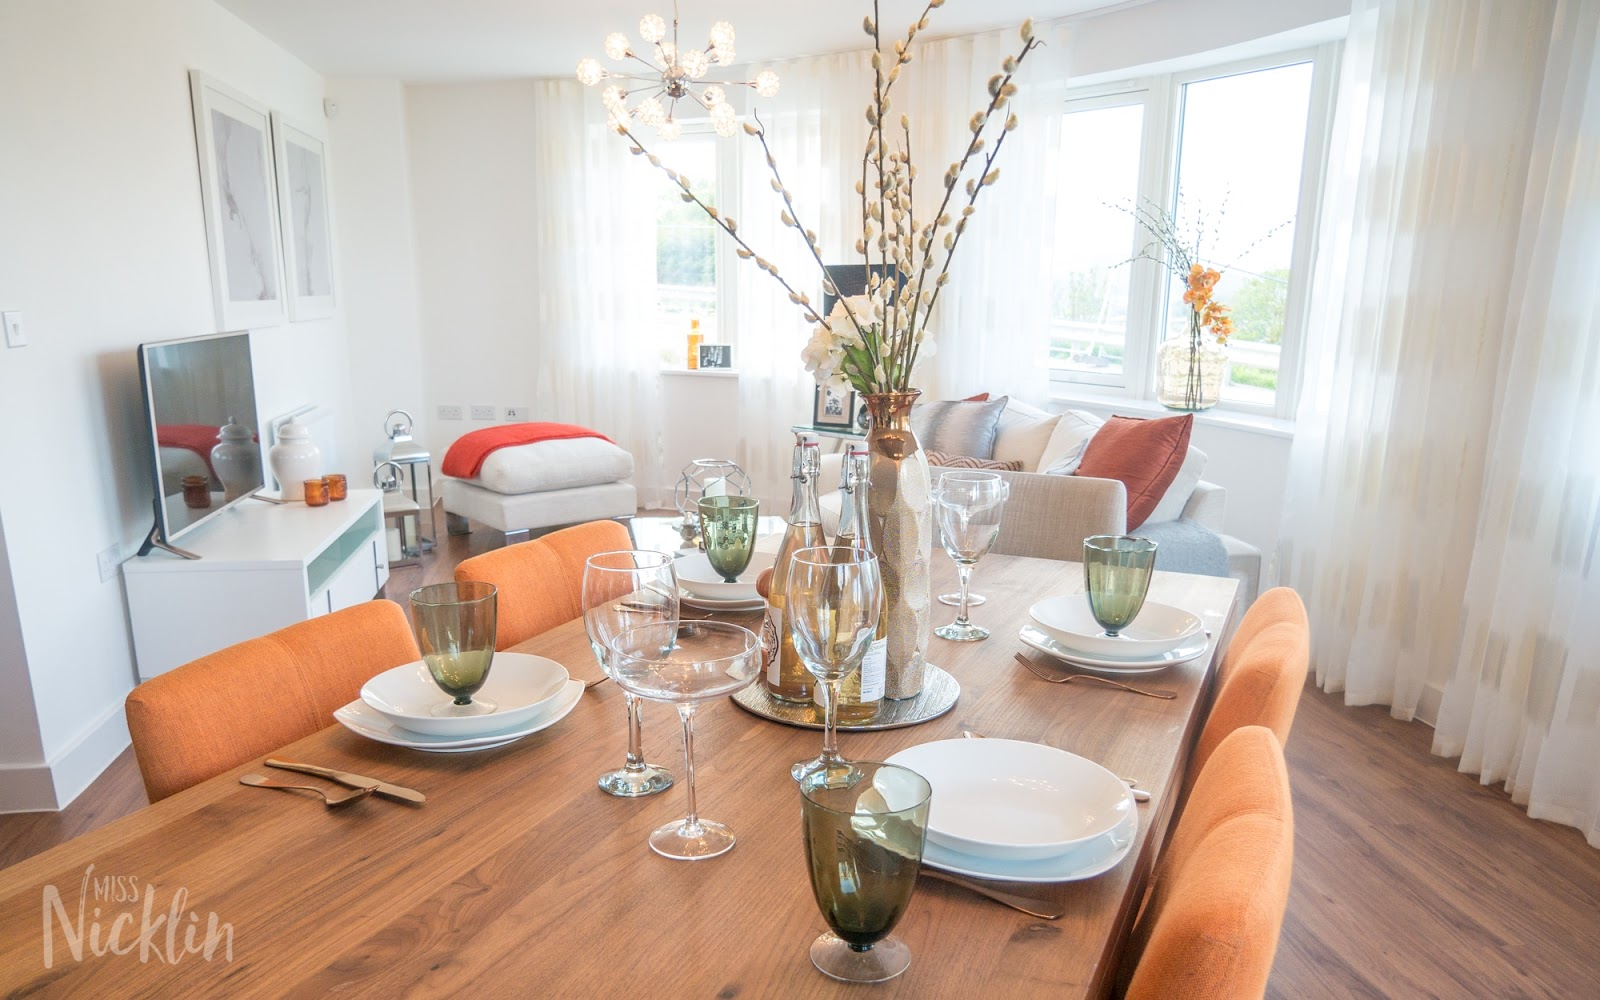 How to Create an Instagram Worthy Home | Miss Nicklin | A South ...